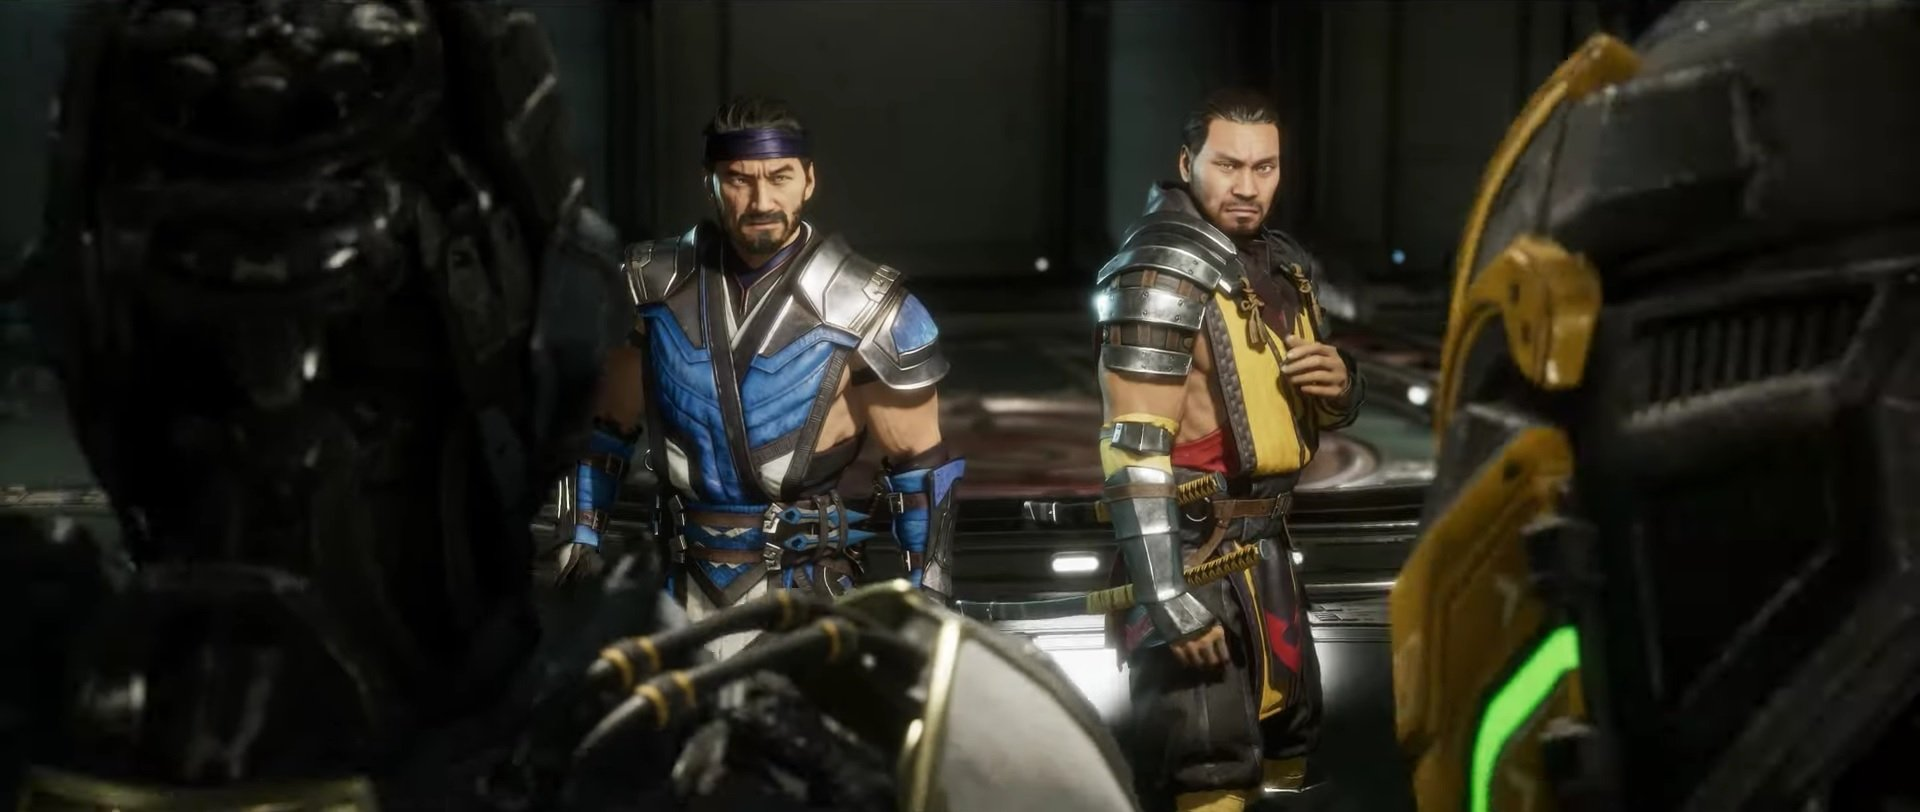 Mortal Kombat 11's launch trailer welcomes you to 'Test Your Might' screenshot